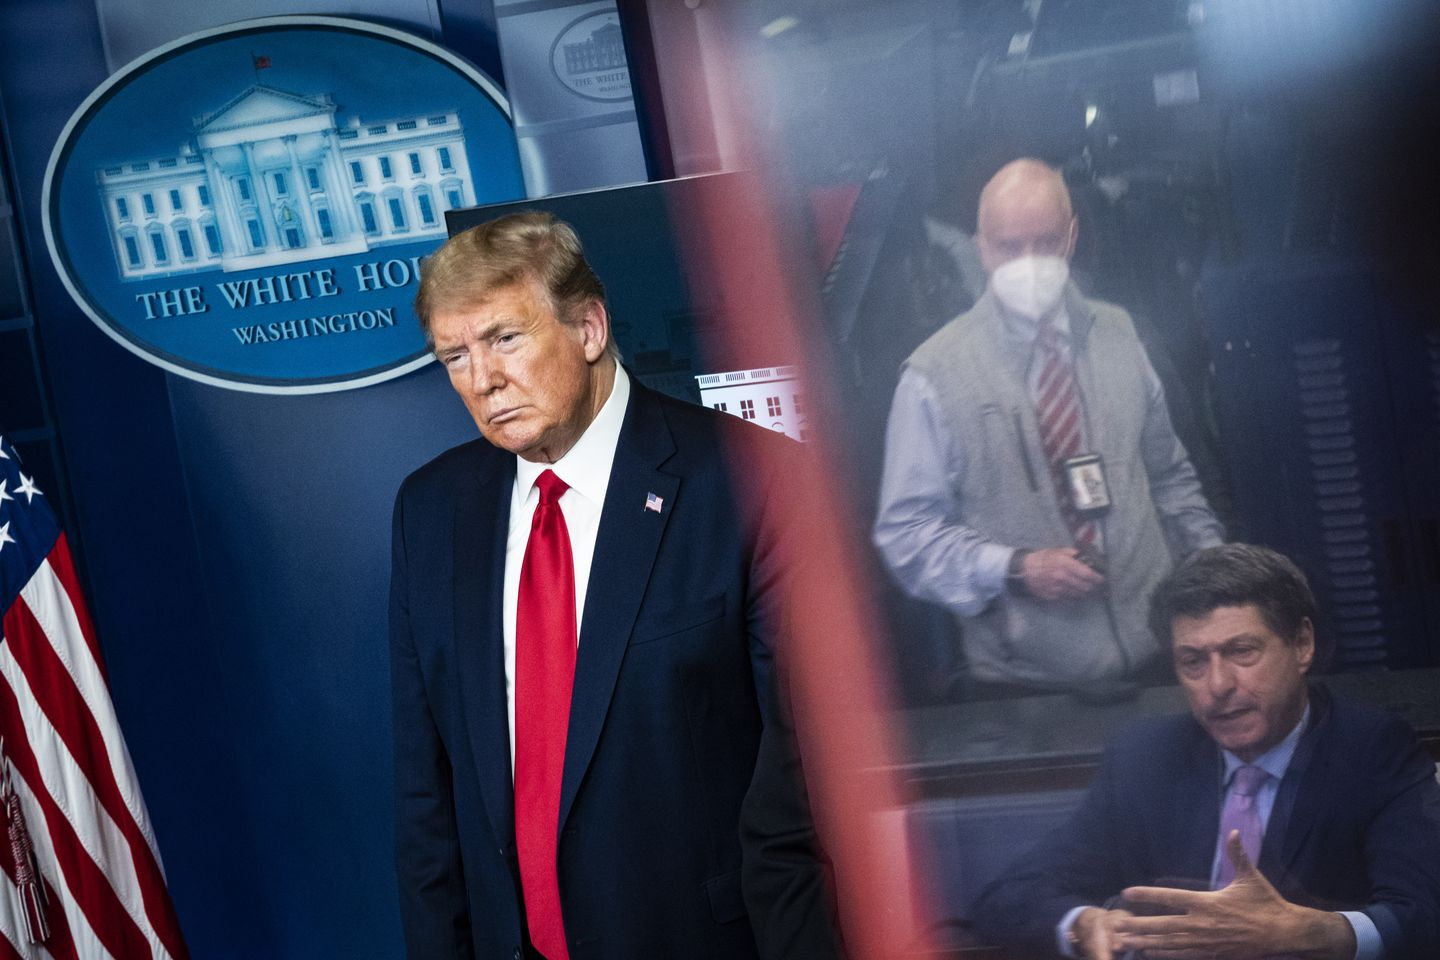 As U.S. discouraged mask use for public, White House team raced to secure face coverings from Taiwan for senior staff